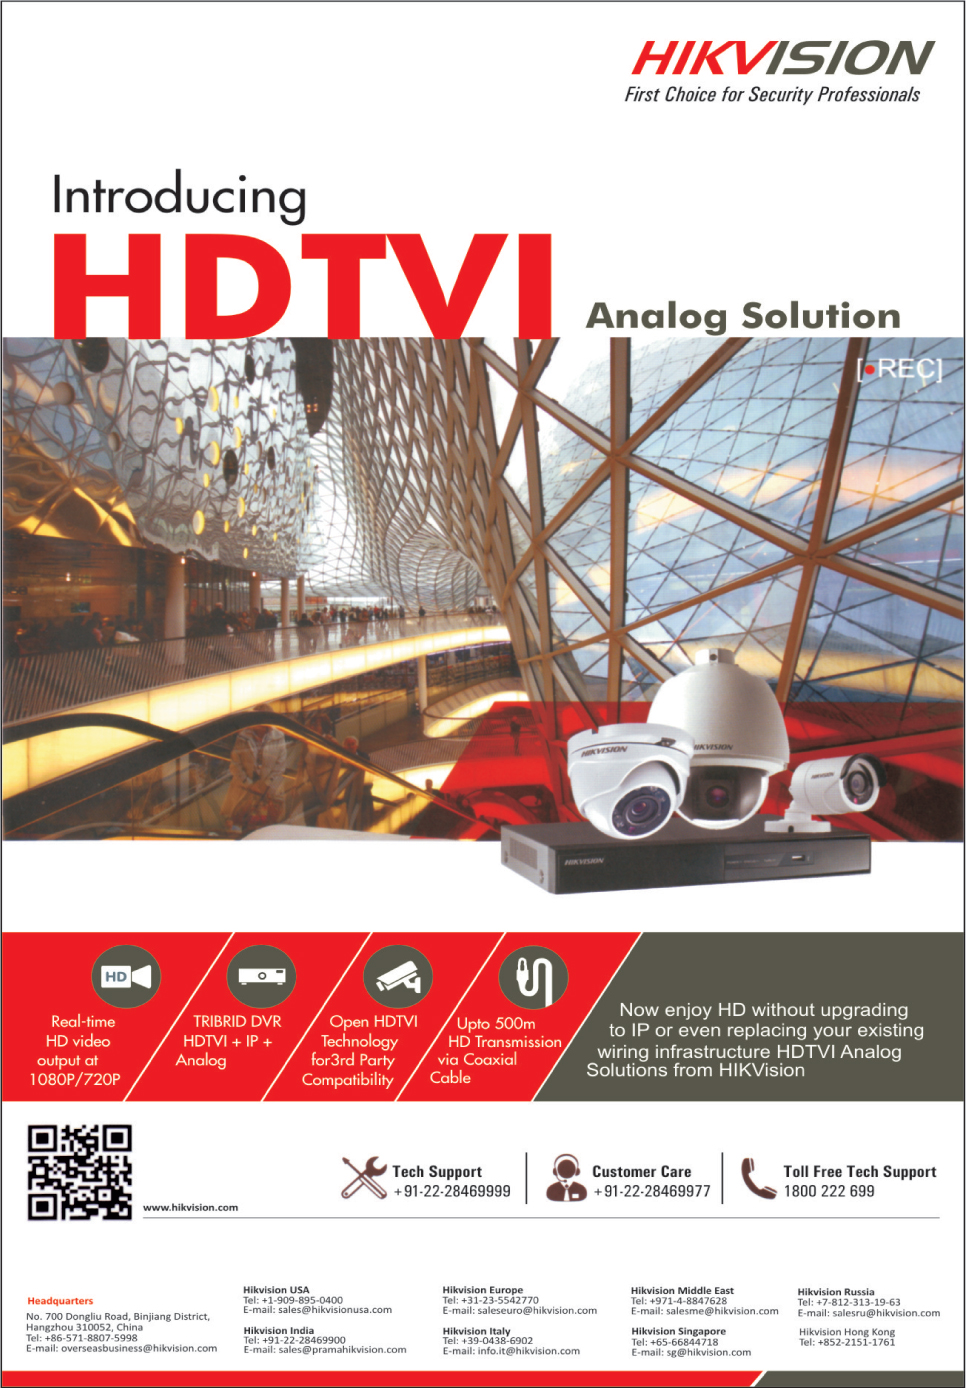 HDTVI Analog Solutions